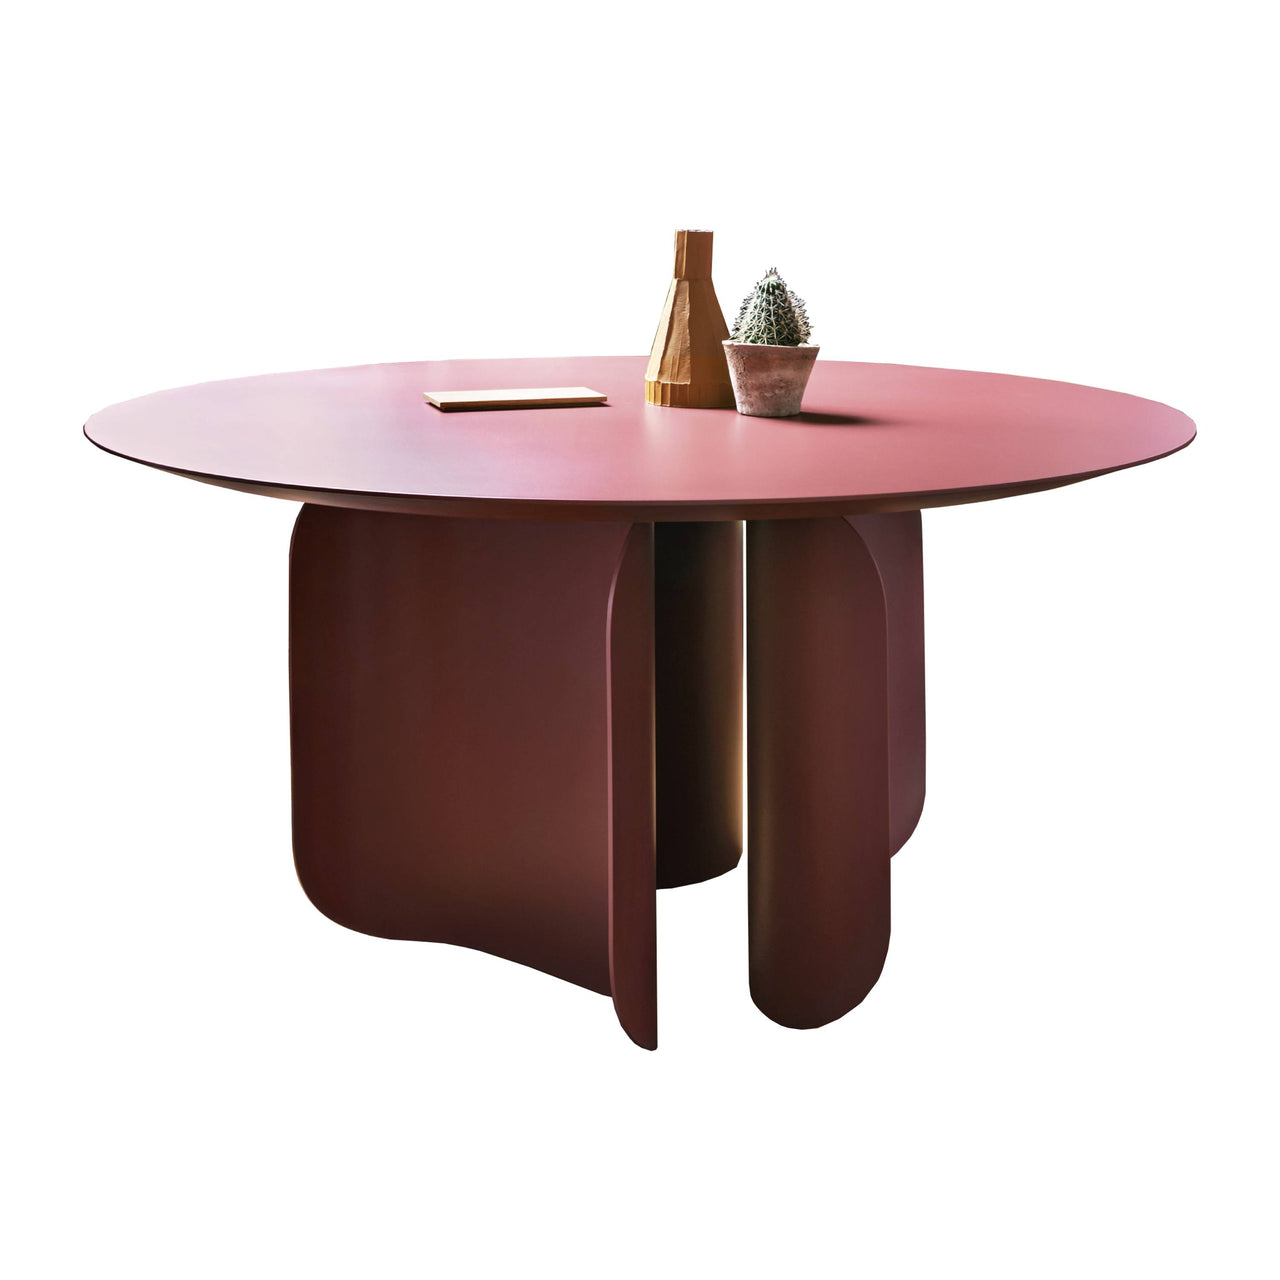 Barry Round Table: Marsala Red Lacquer + Marsala Red Lacquer Base